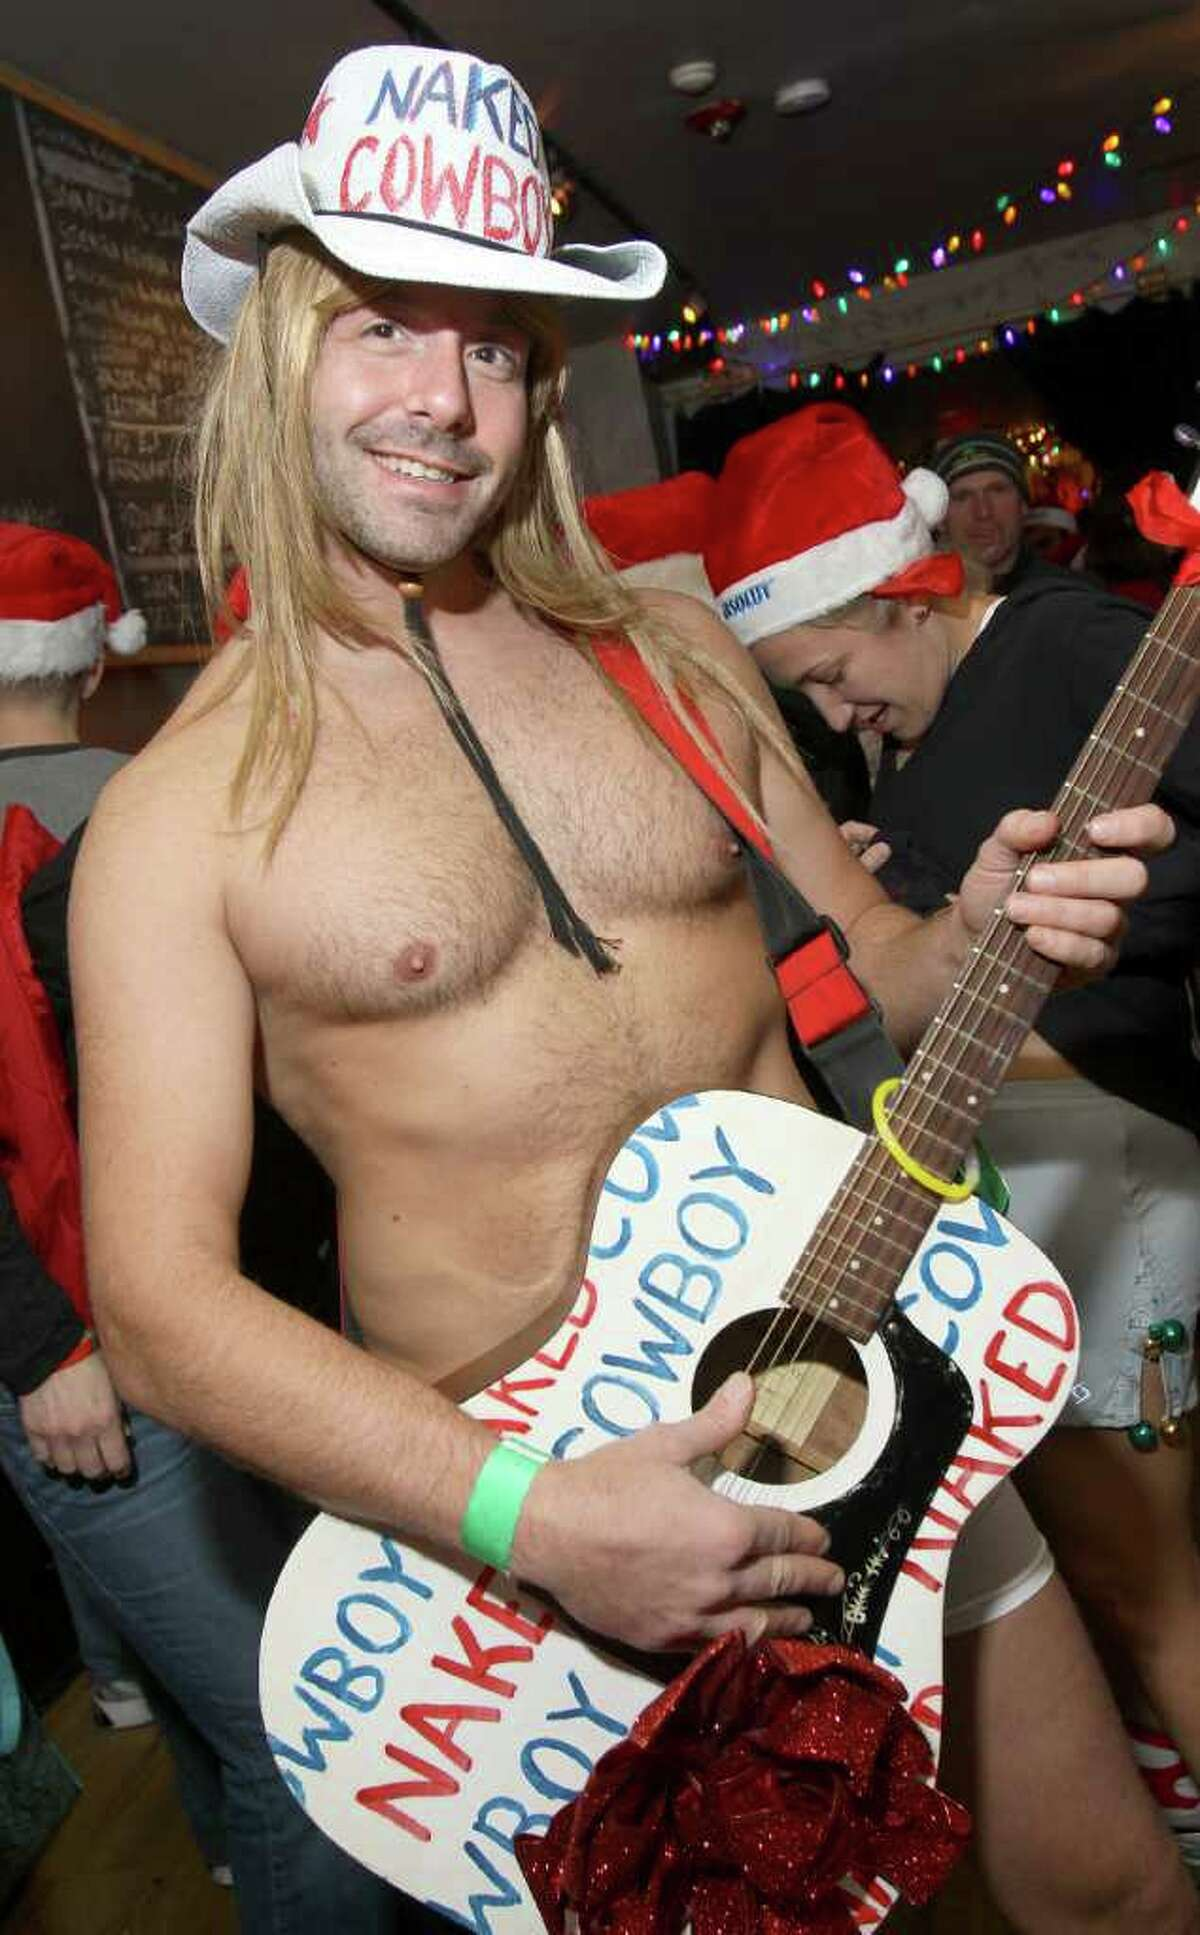 Rob Schweizer channels the Naked Cowboy at the Lionheart before the start of the Santa Speedo Sprint. (Joe Putrock / Special to the Times Union)